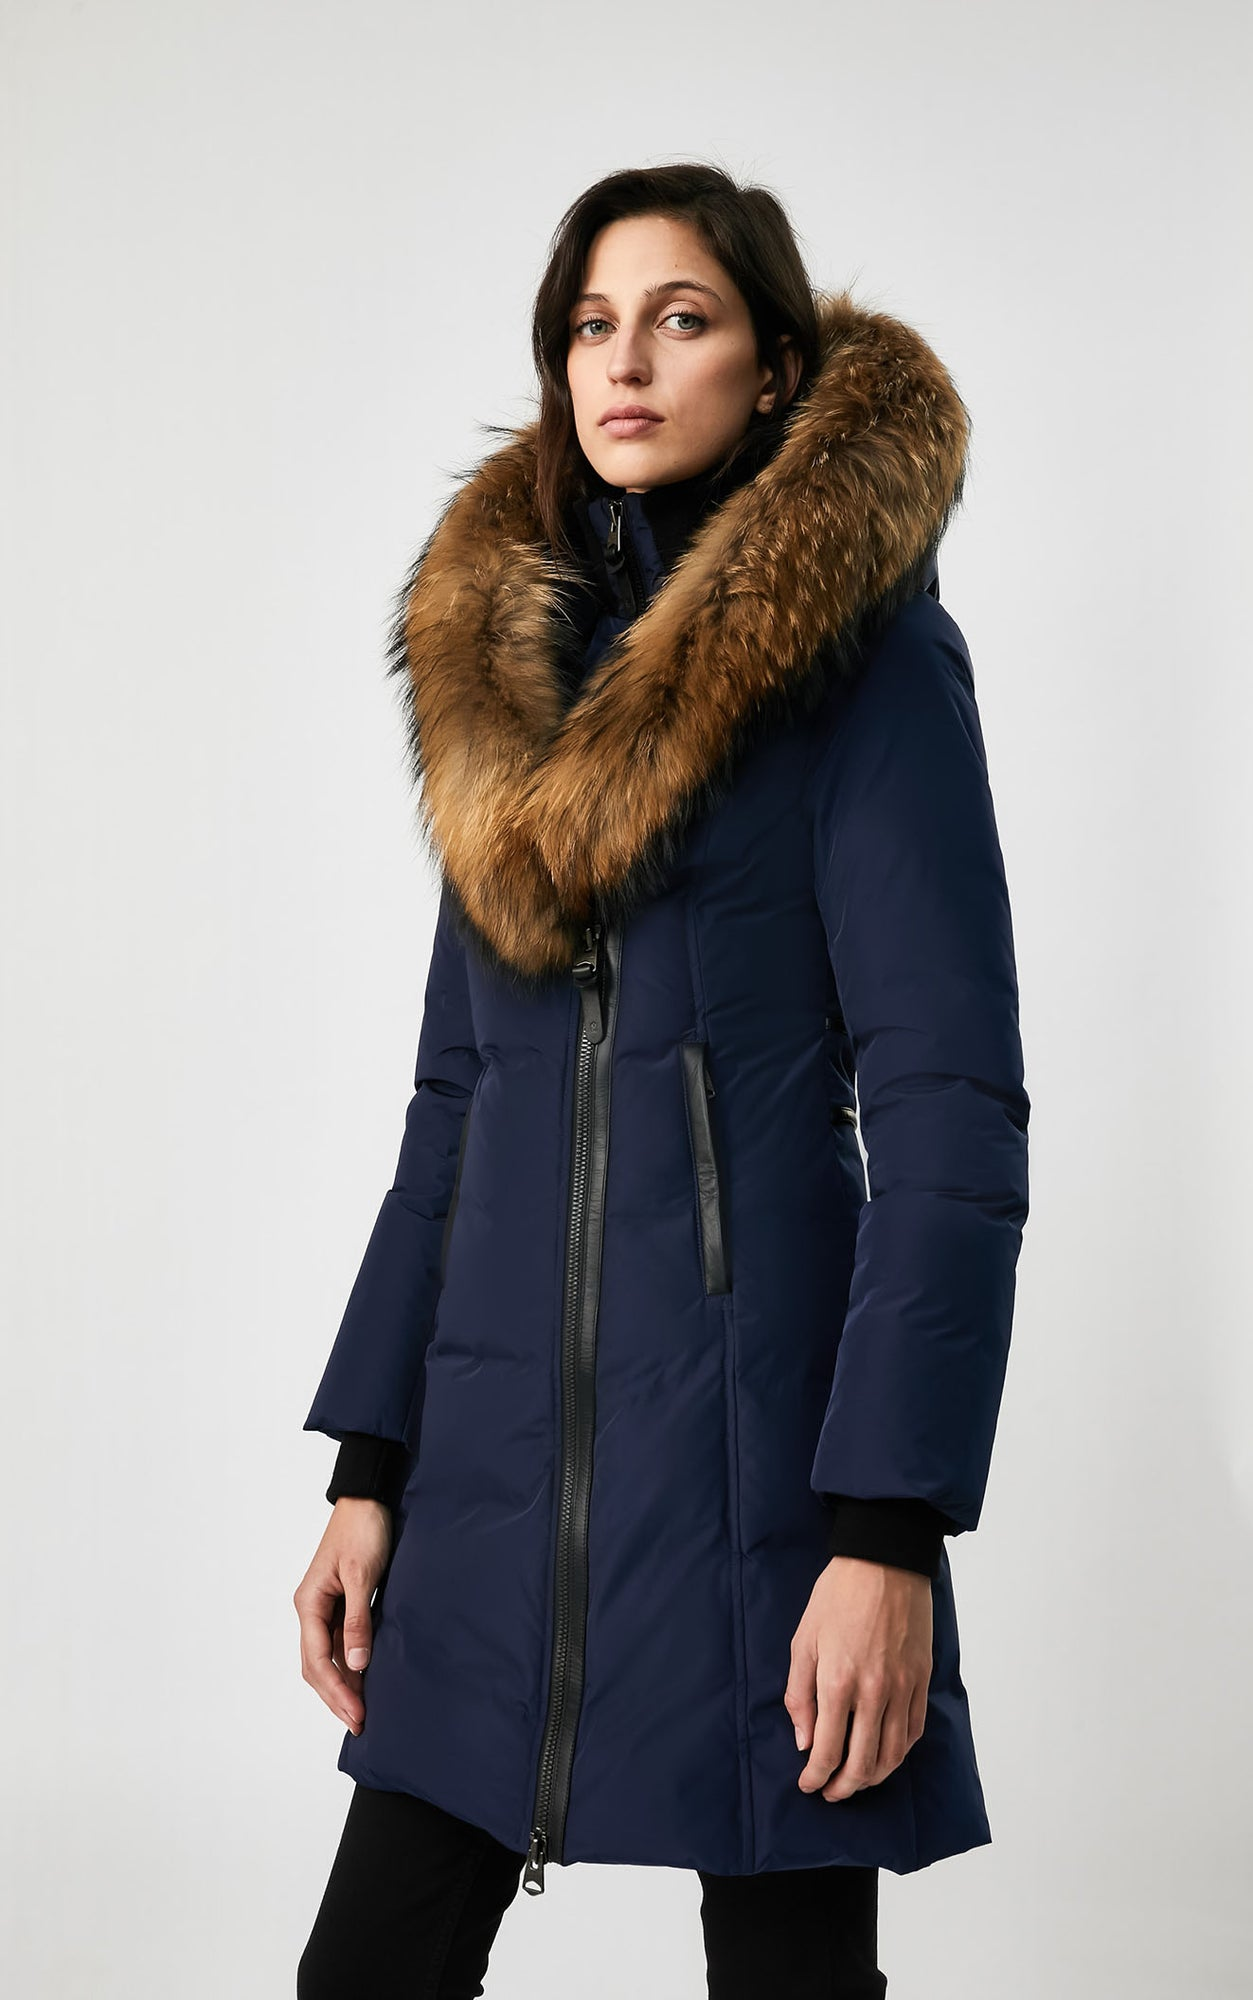 MACKAGE KAY DOWN WOMEN'S COAT W/ NATURAL FUR COLLAR KAY-R-NAVY